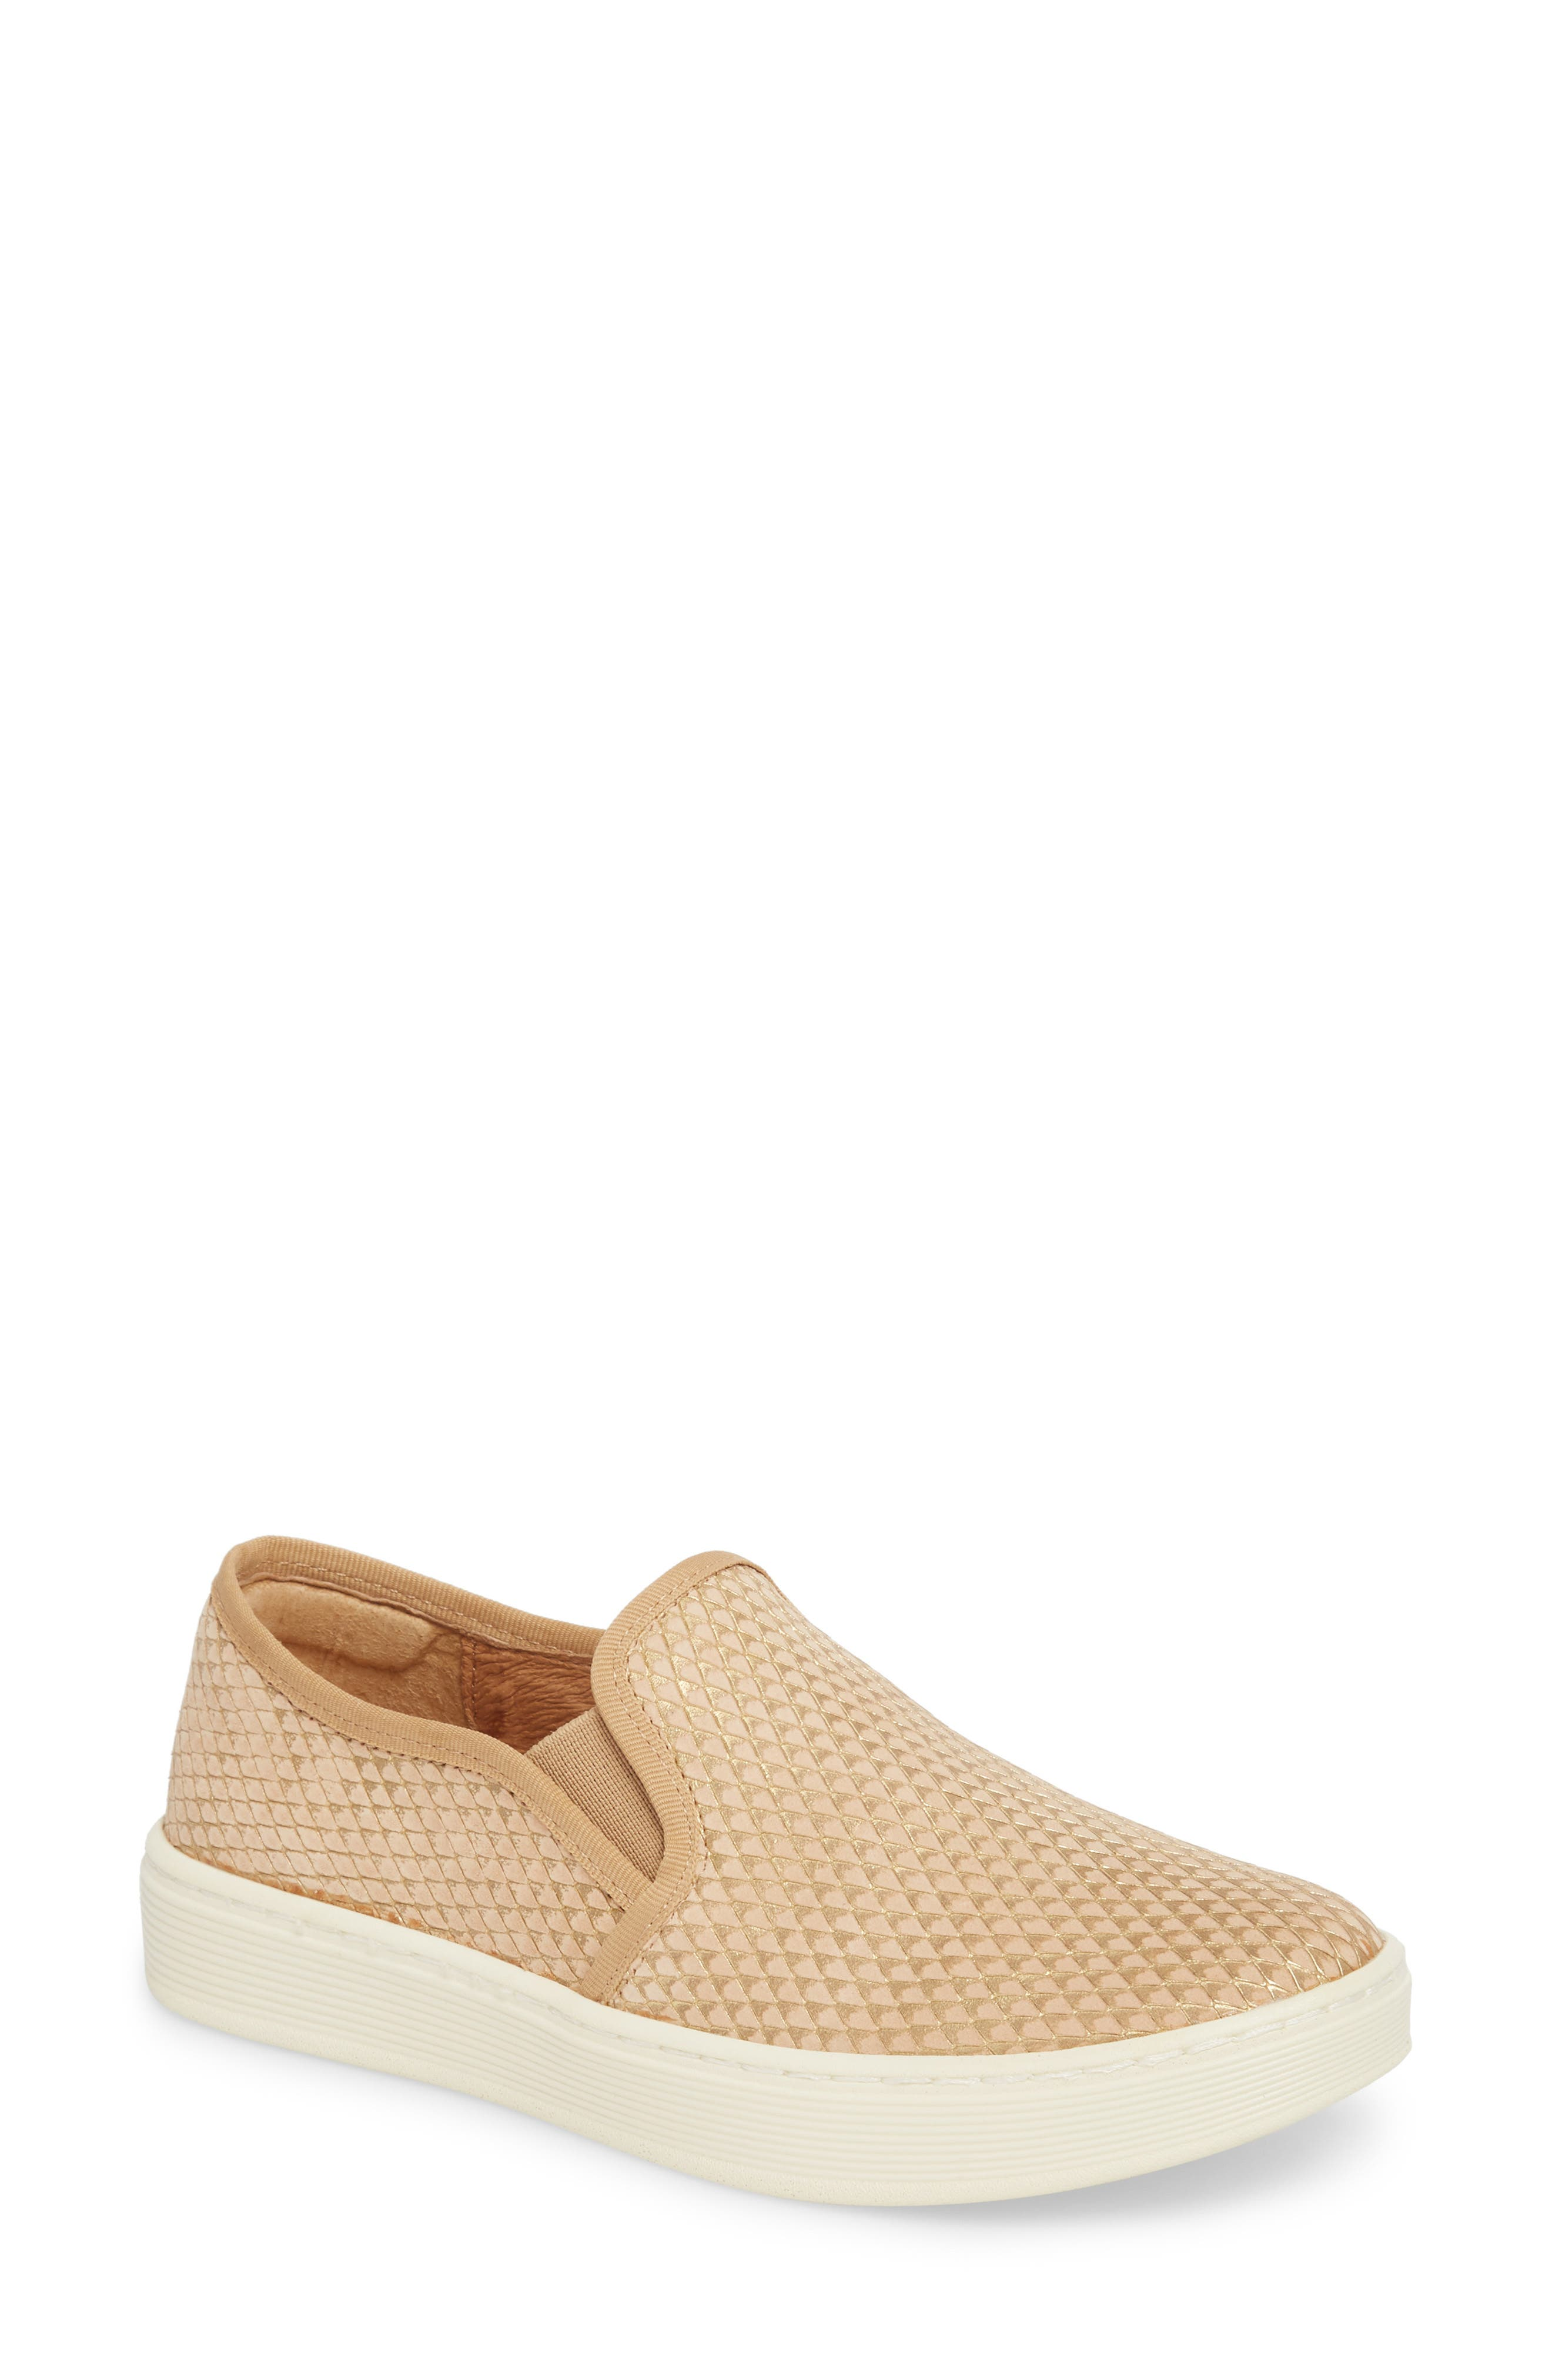 Söfft 'Somers' Slip-On Sneaker (Women)